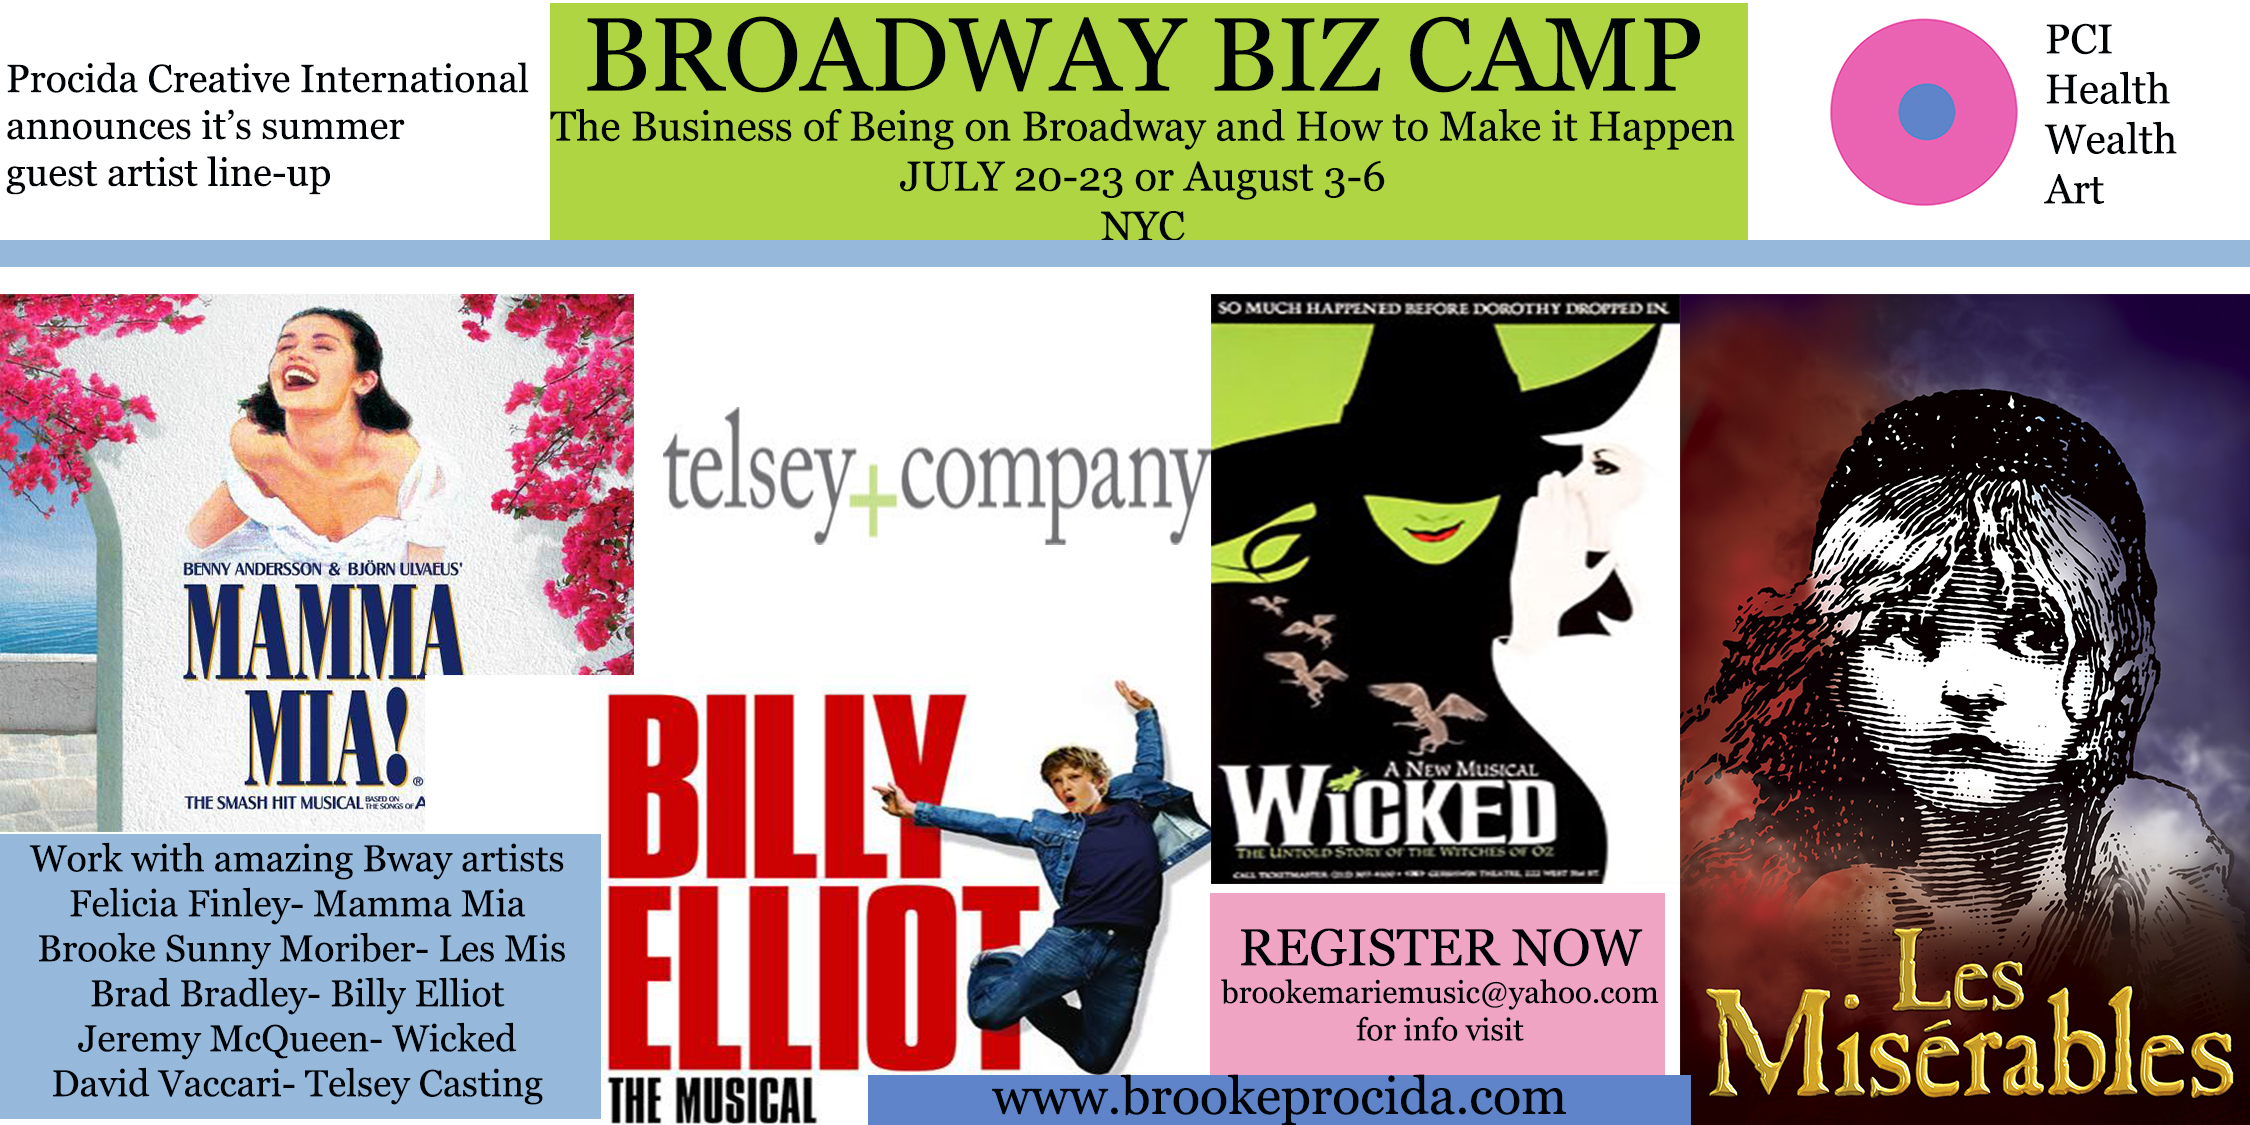 PCI Broadway Biz Camp